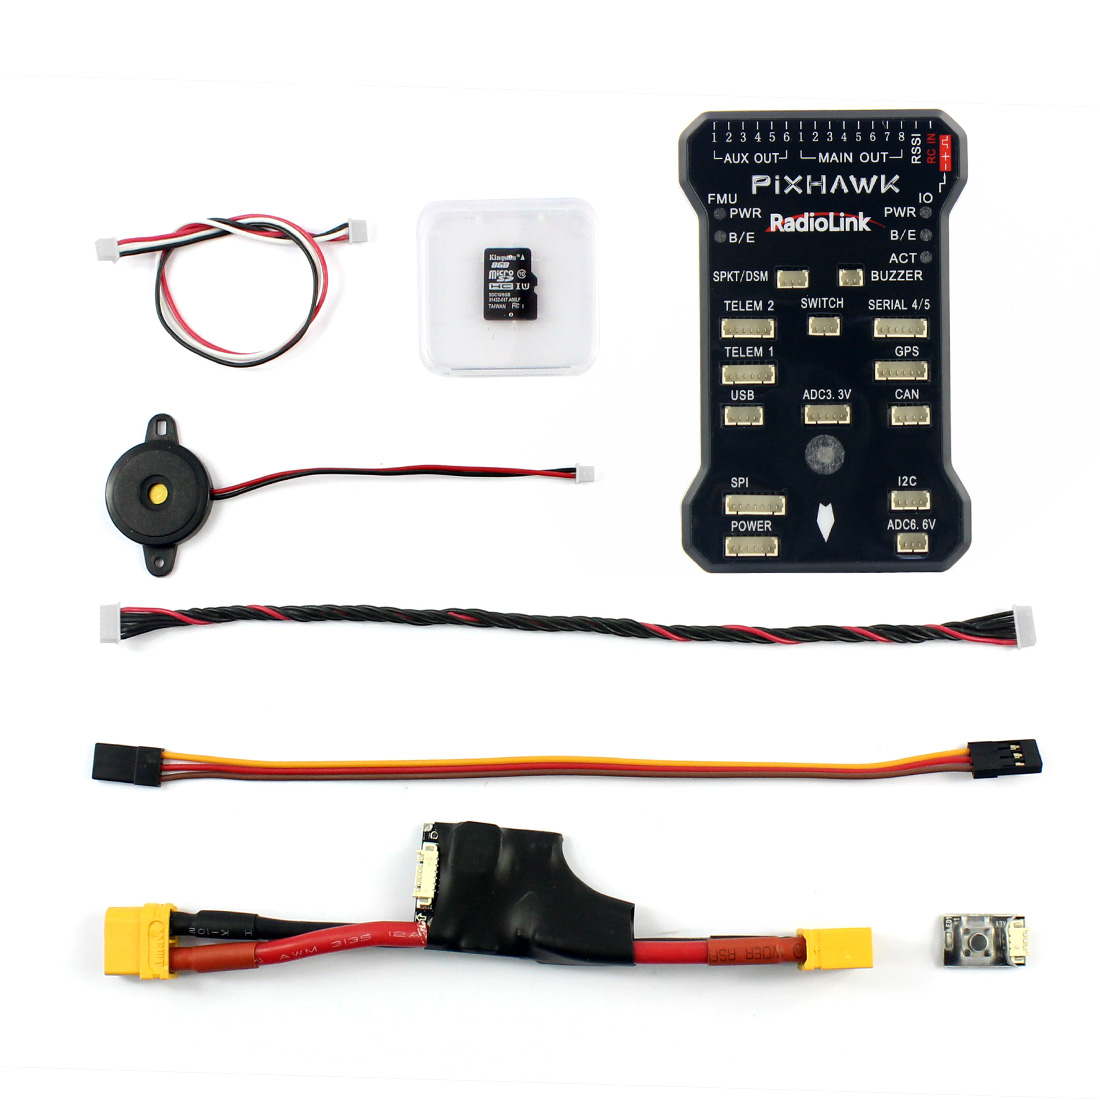 F17882 Radiolink PIX Flight Controller & Power Module Buzzer 4G TF for AT9/AT10 Remote Controller OSD DIY RC Multicopter Drone 1pcs radiolink osd information telemetry module prm 03 for radiolink at9 at9s at10 at10ii transmitter